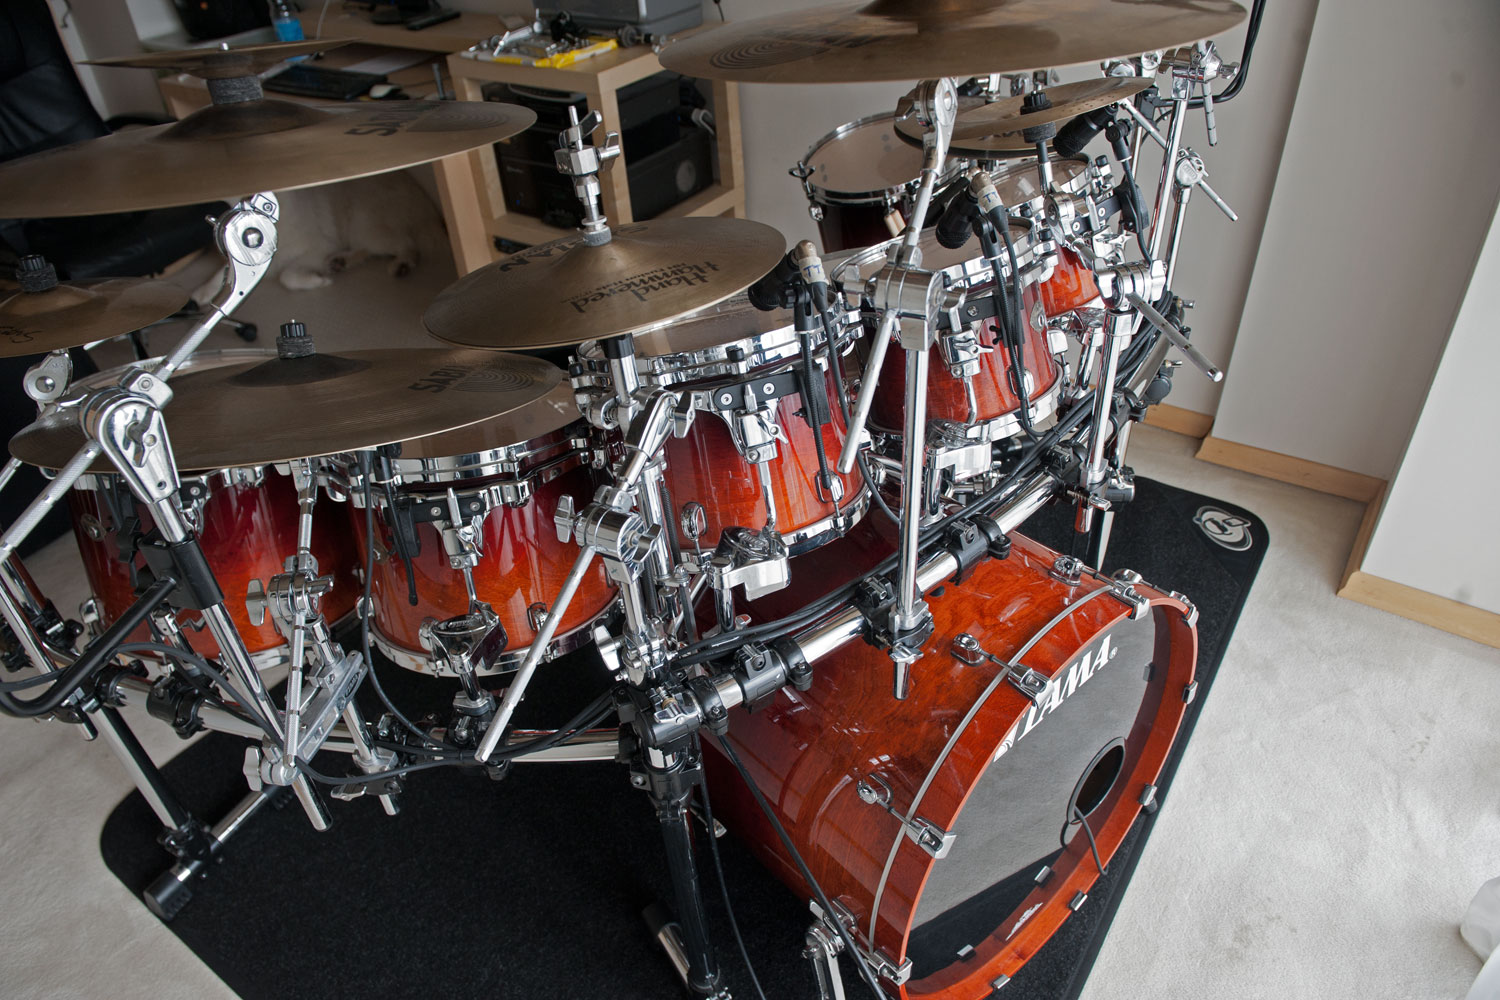 Show us your Tama kits! [Archive] - Page 2 - Pearl Drummers